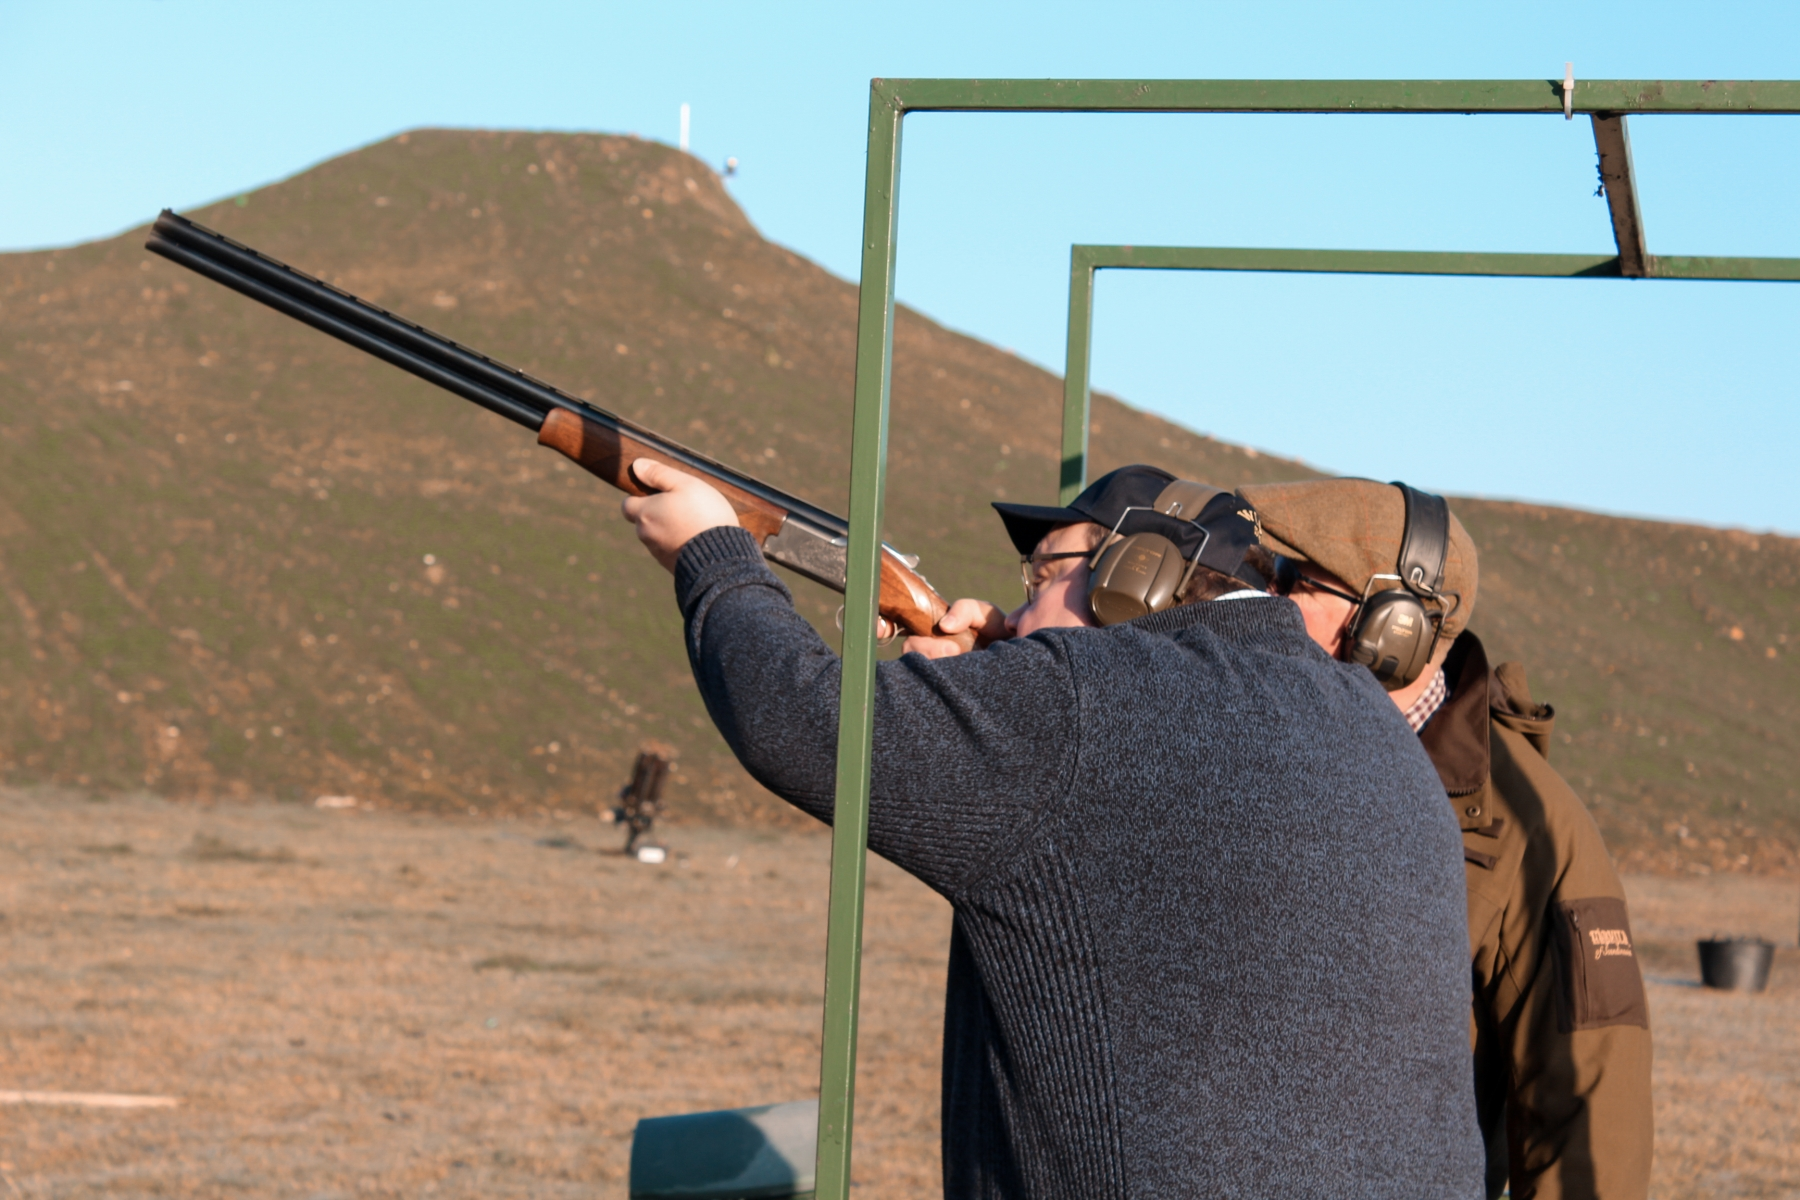 Clay Pigeon Shoot 15.02.2019 (22 of 79)